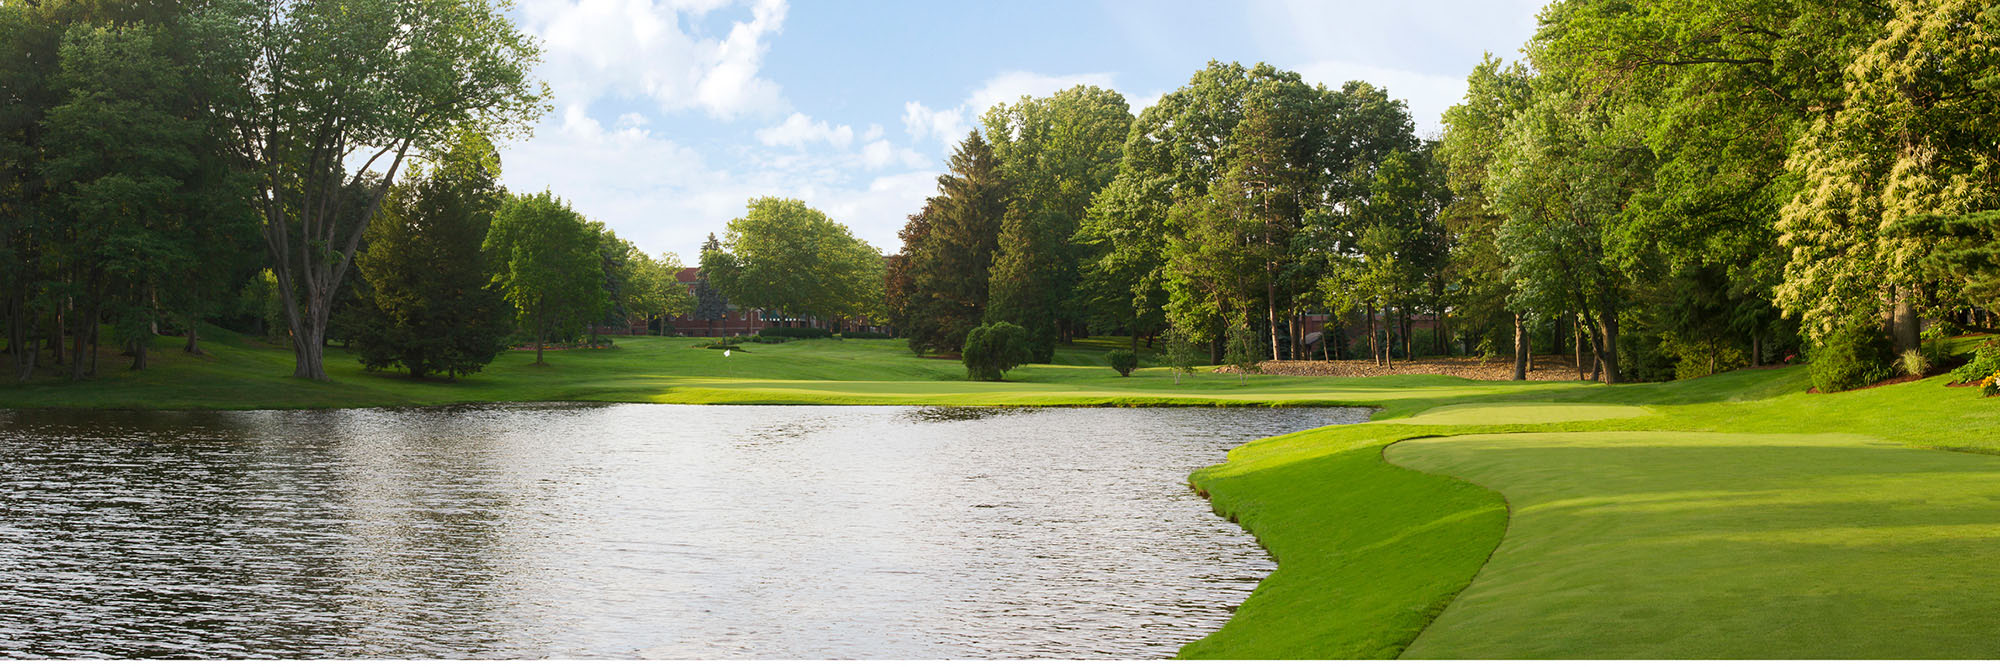 Golf Course Image - Glenmoor Country Club No. 7